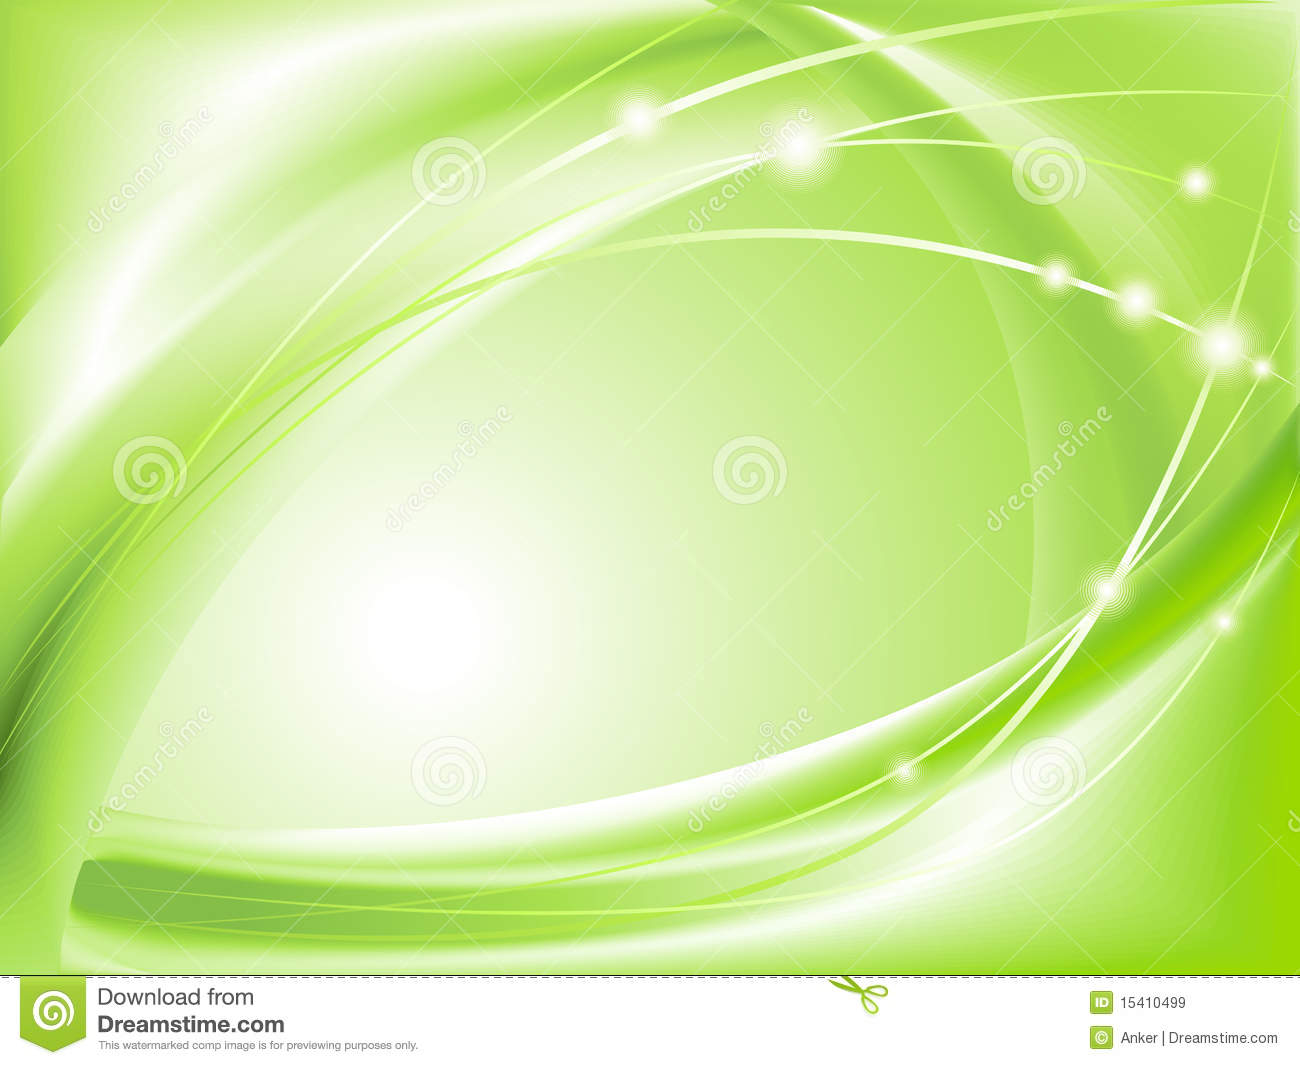 Abstract green background stock vector Image of illustration